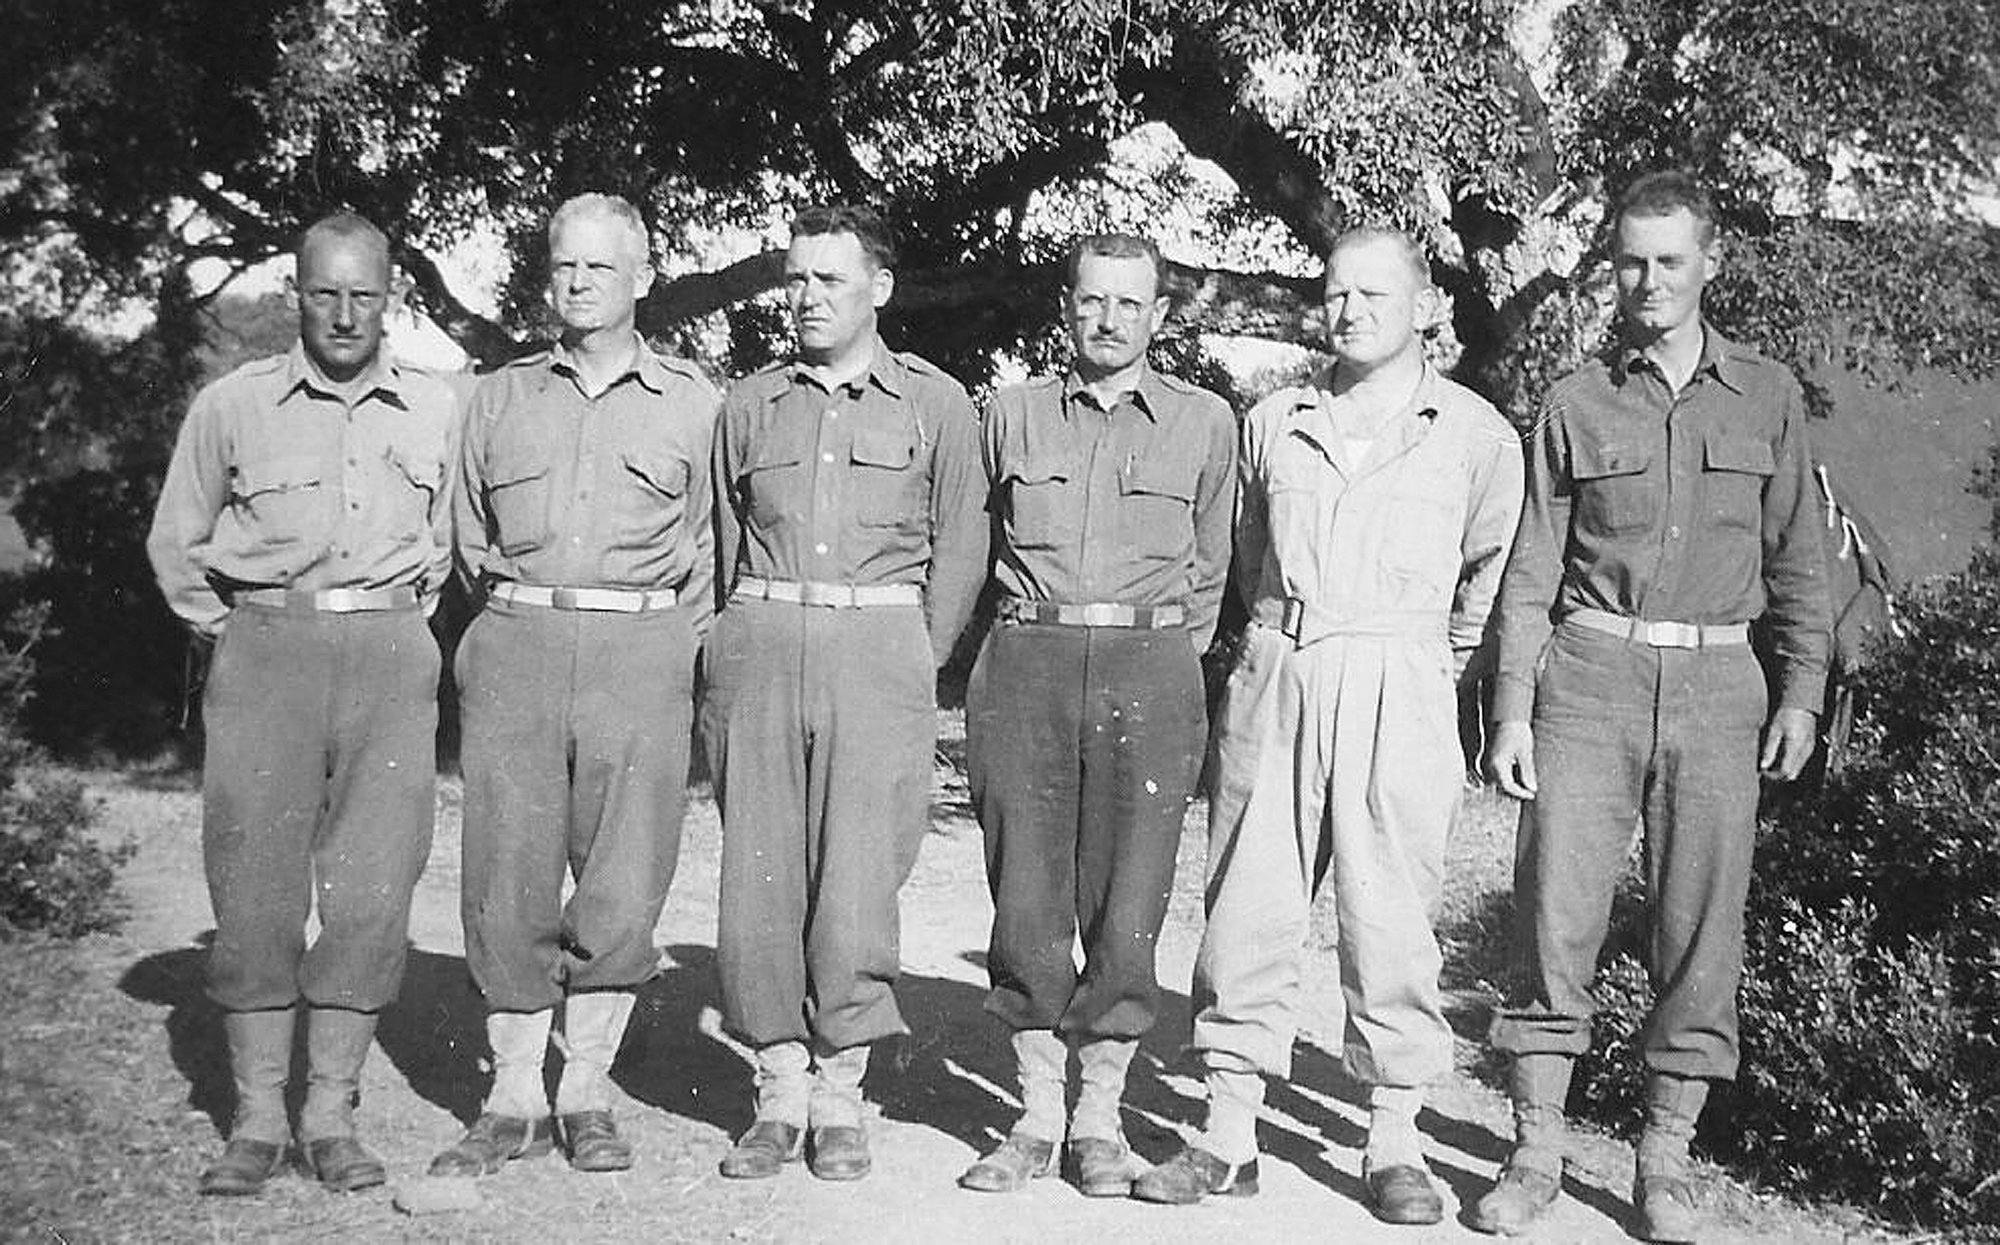 Officers of the 178th Field Artillery Battalion are seen in North Africa in 1943. They were, from left, Capt. Felters, liaison officer; Maj. Wilson; Lt. Col. Westbury; Maj. McInnis; Capt. Hanemann; and Lt. Van Arsdale.